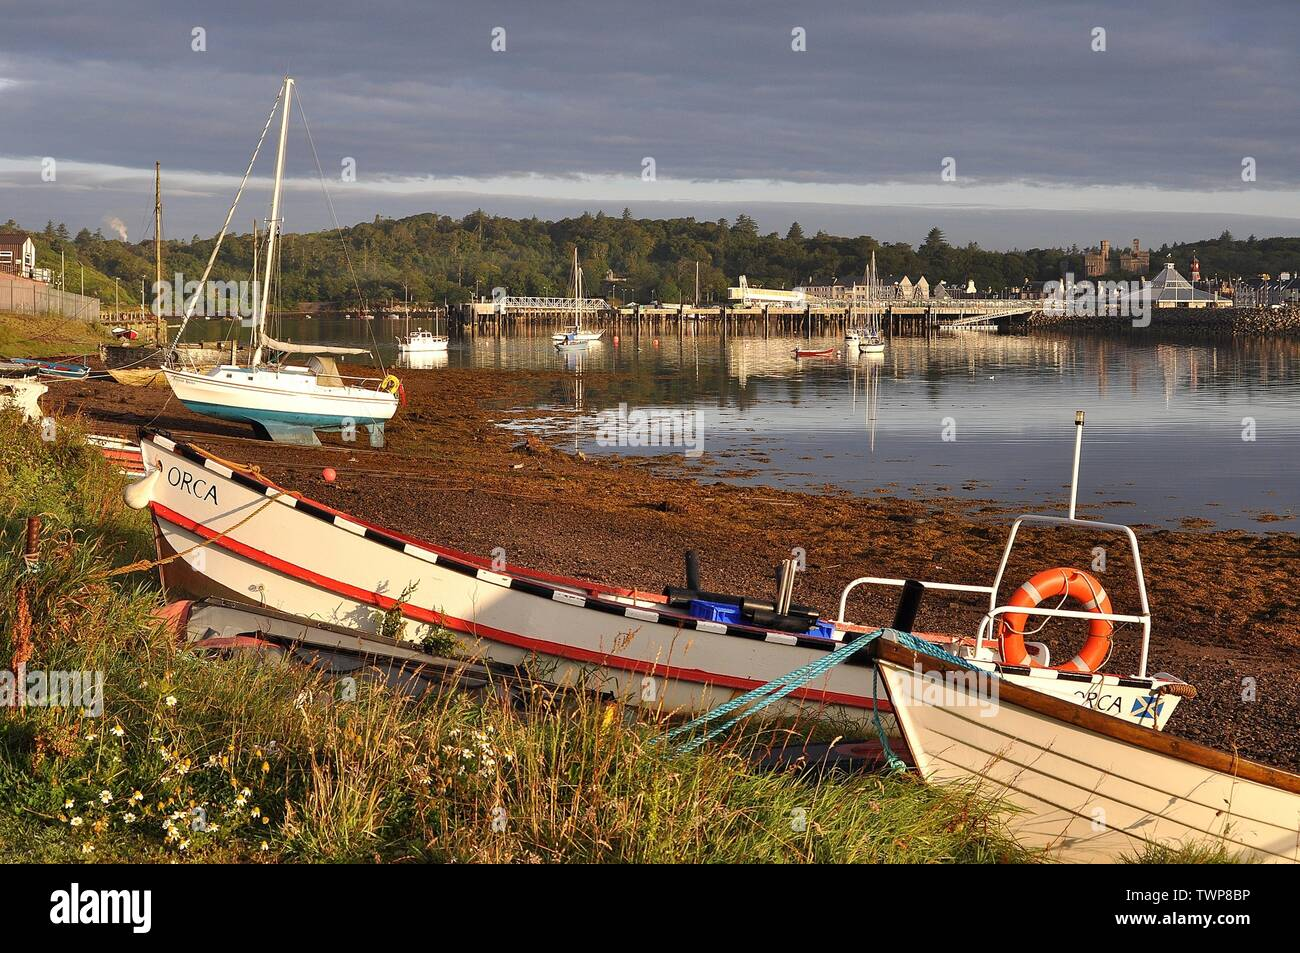 STORNOWAY HARBOUR, OUTER HEBRIDES, SCOTLAND. - Stock Image